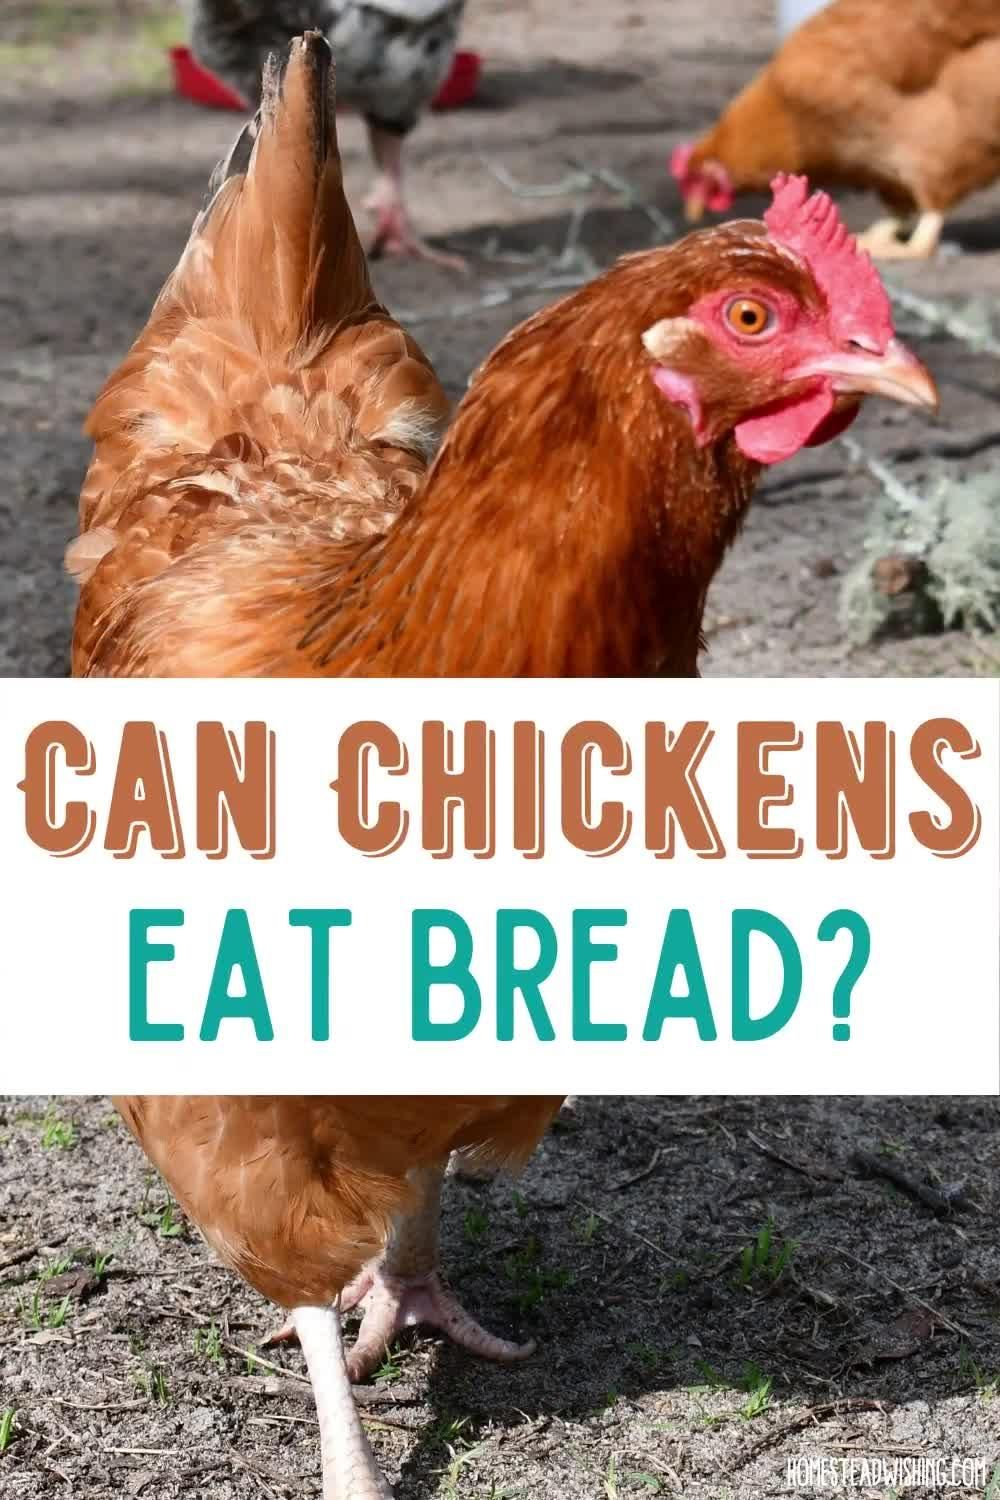 Can Chickens Eat Bread Plus Healthy Homemade Chicken Treats Video Video In 2020 Chicken Eating Canned Chicken Chickens